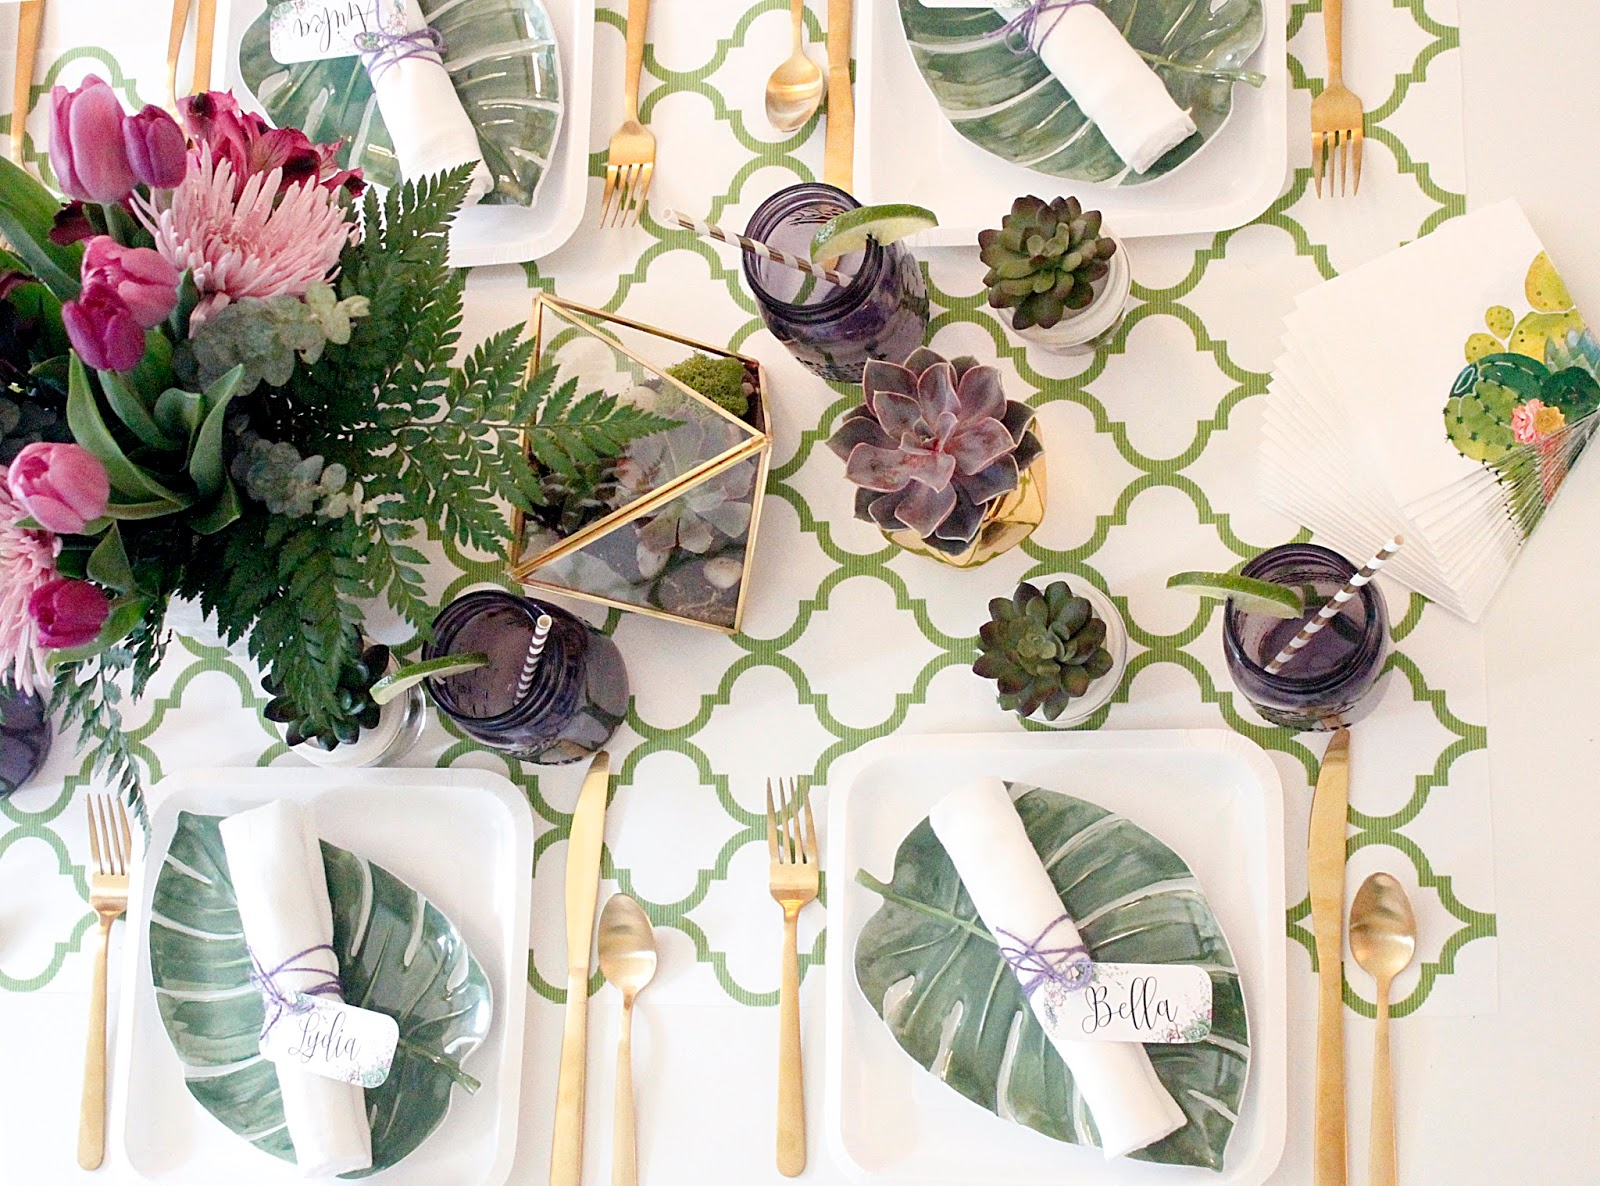 Each Place Setting Started With A Simple Square White Plate Layered With A  Darling Leaf Shaped Plate And Finally Topped Off With A White Linen Napkin,  ...